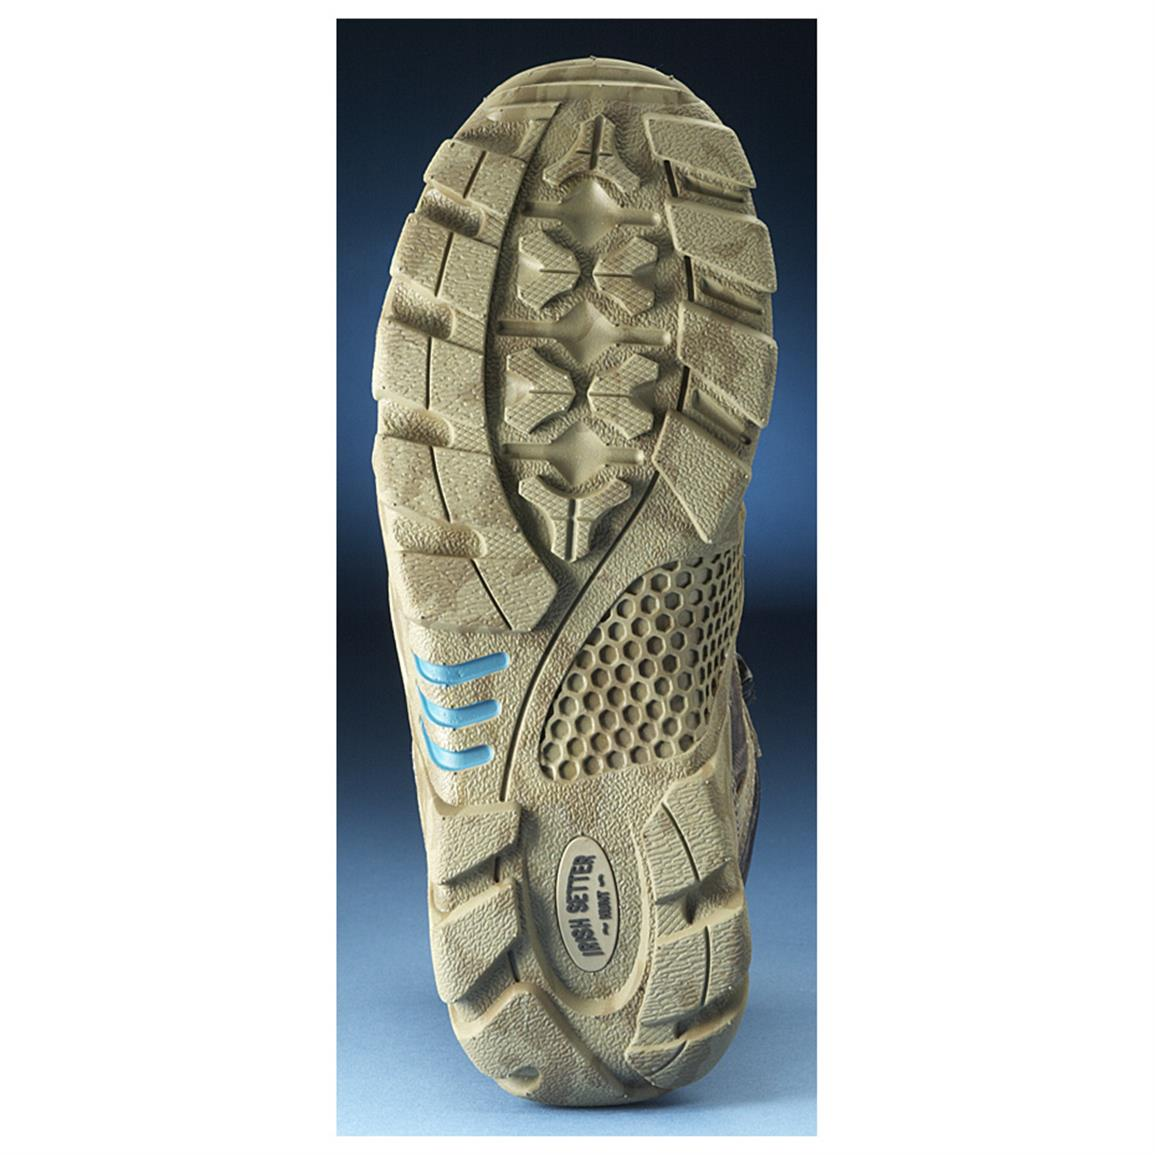 RPM outsole is extremely lightweight, more mobile